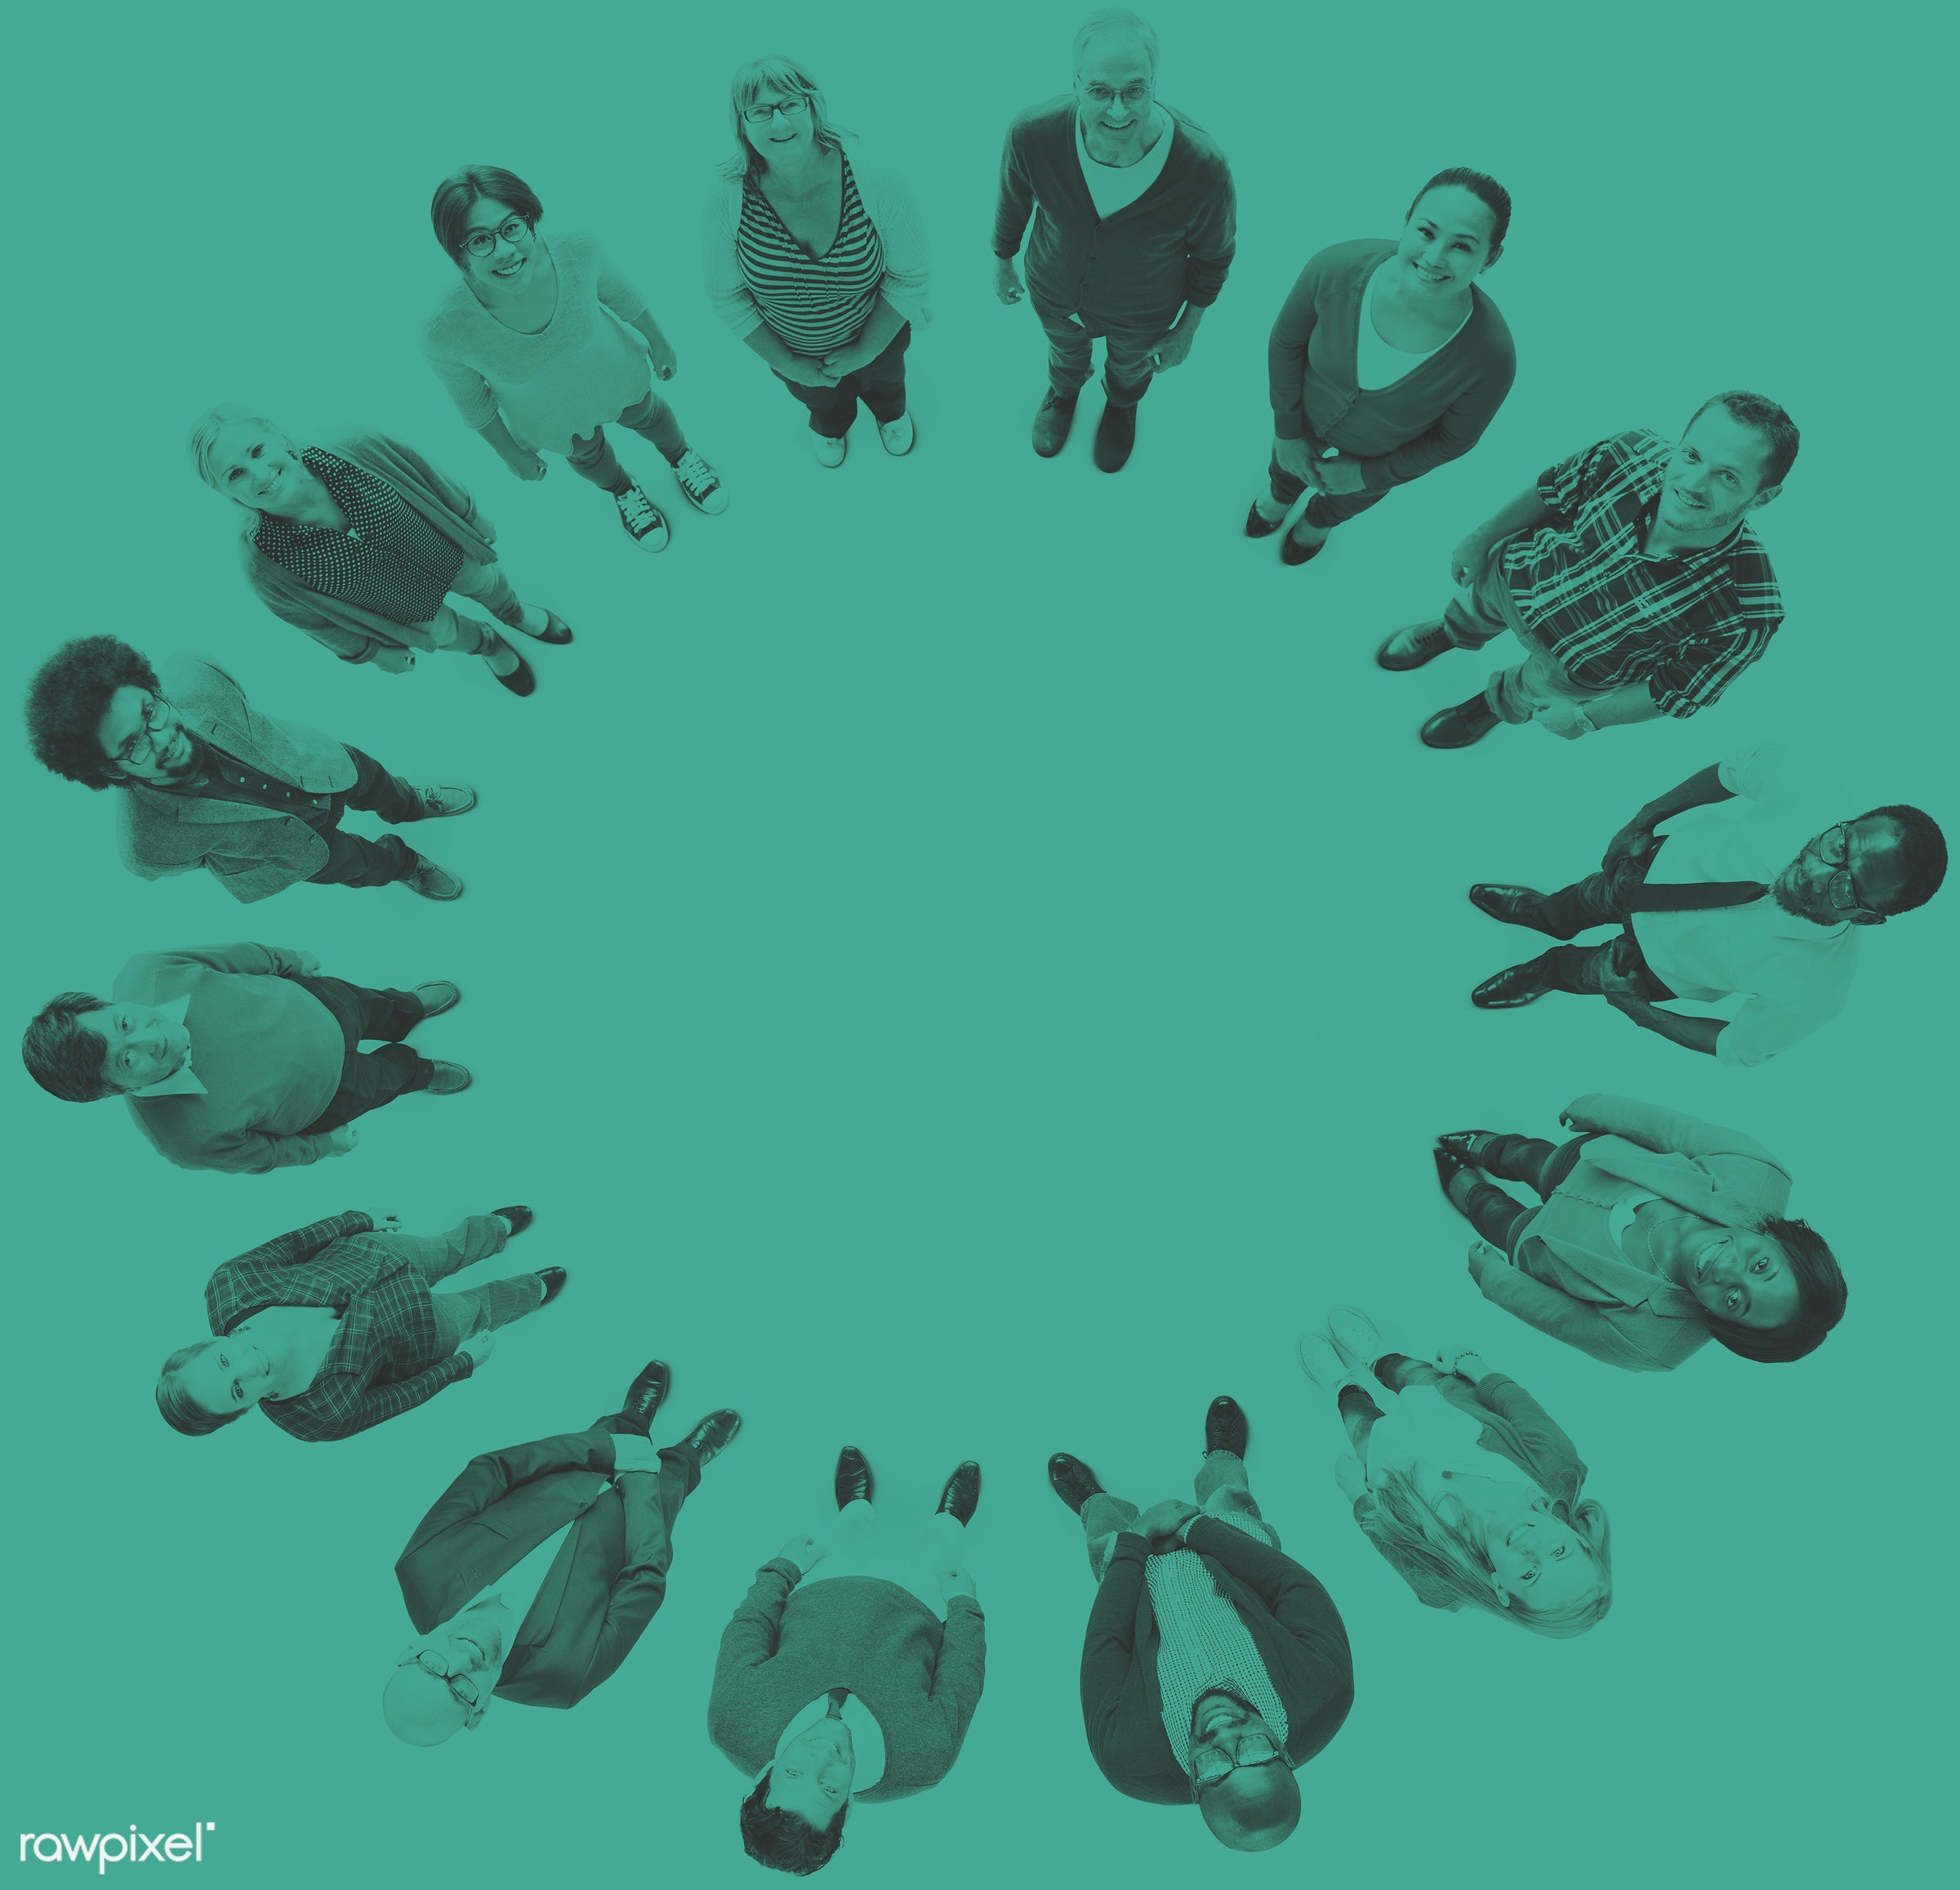 aerial view, african descent, asian ethnicity, blank, casual, circle, colorful, communication, community, connection, copy...